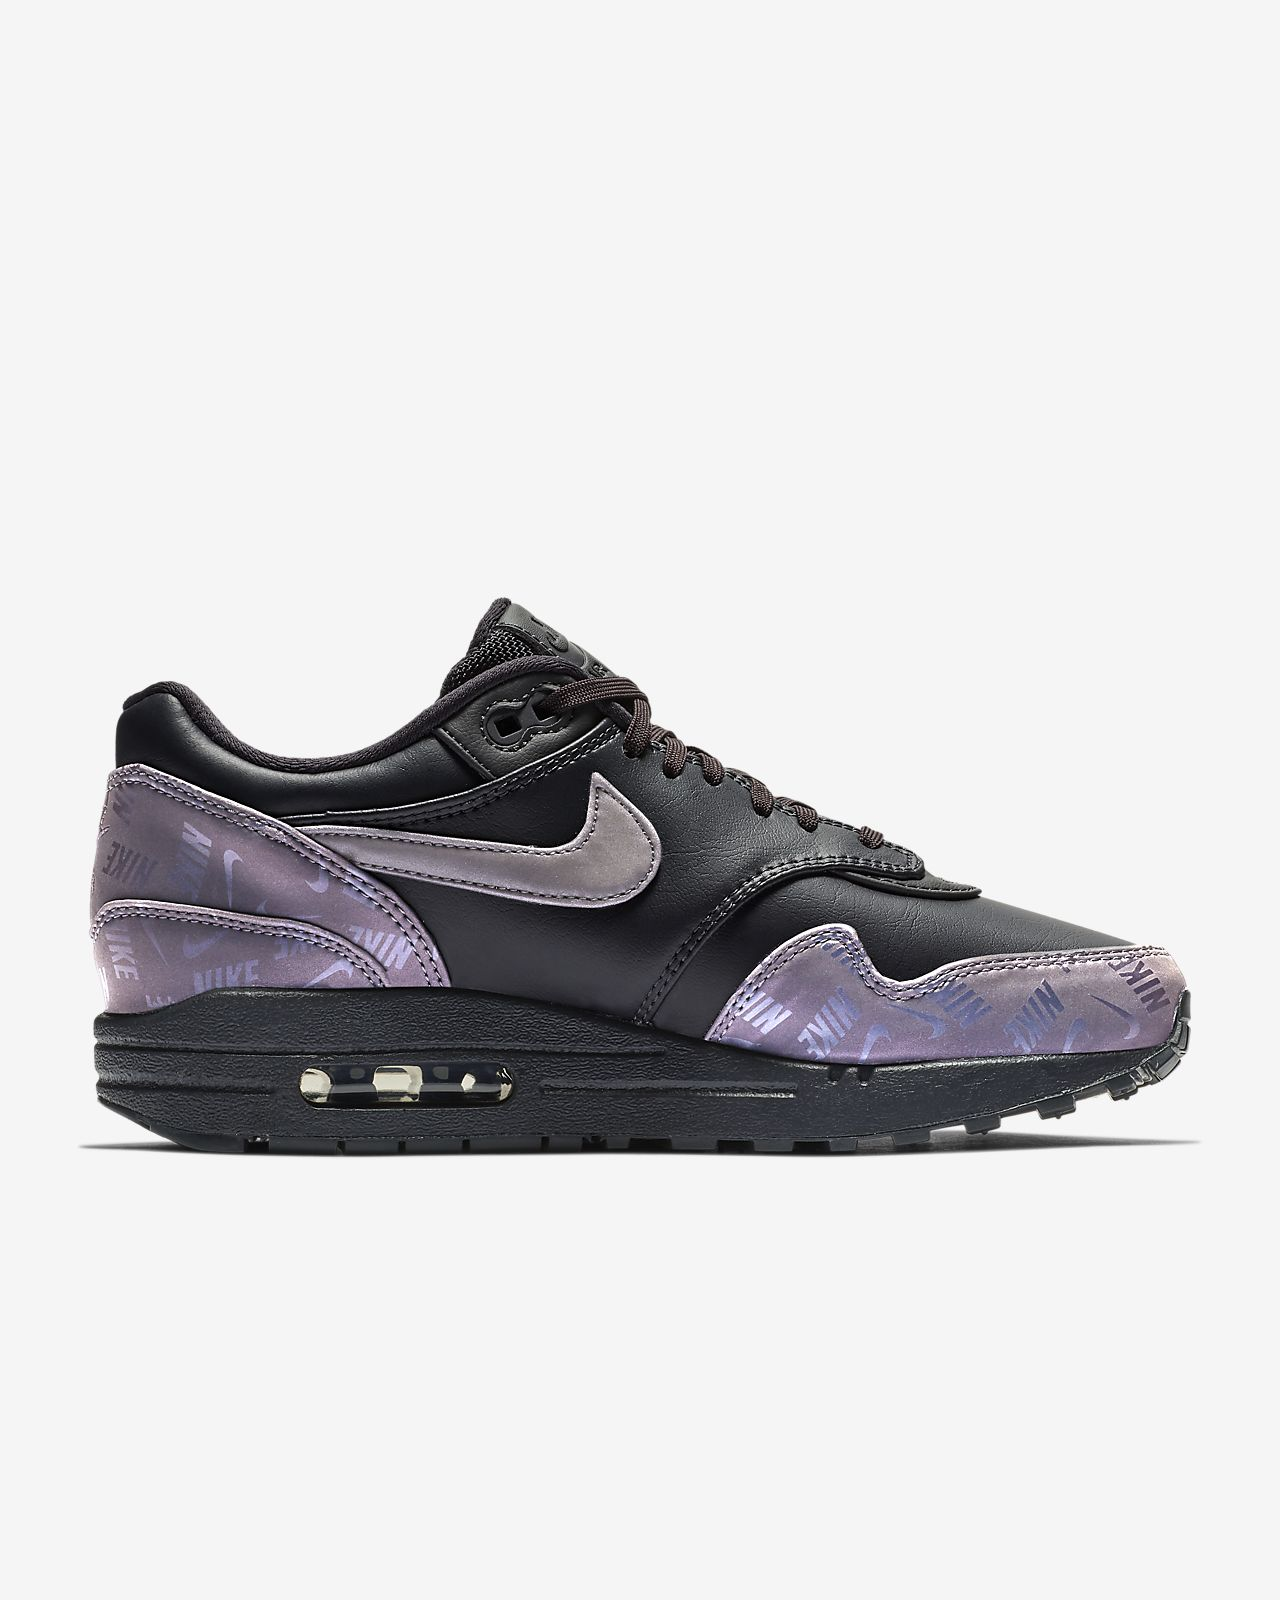 980296f226 Nike Air Max 1 LX Women's Shoe. Nike.com GB